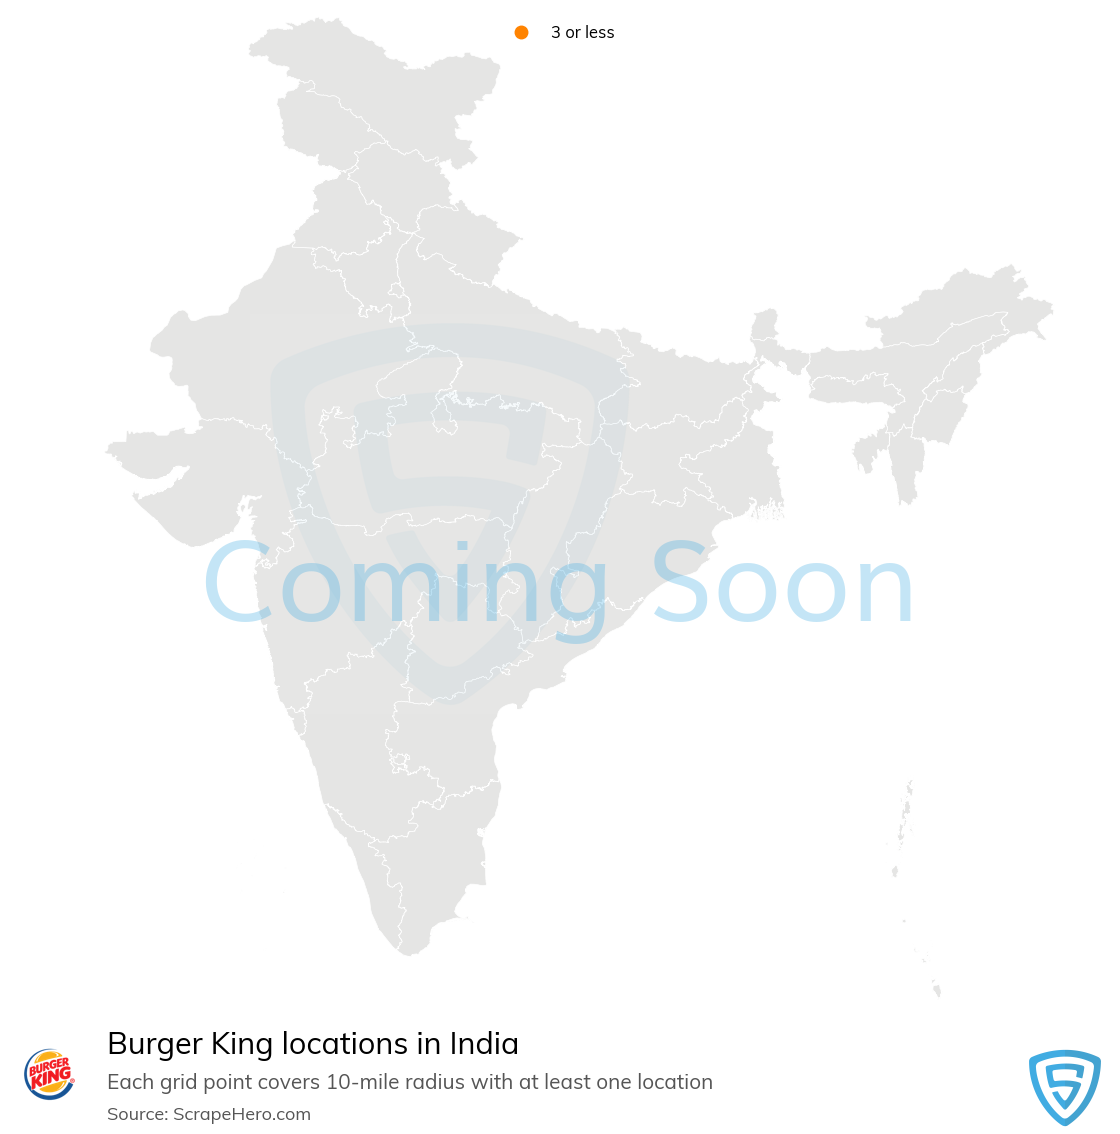 Burger King Store locations in India